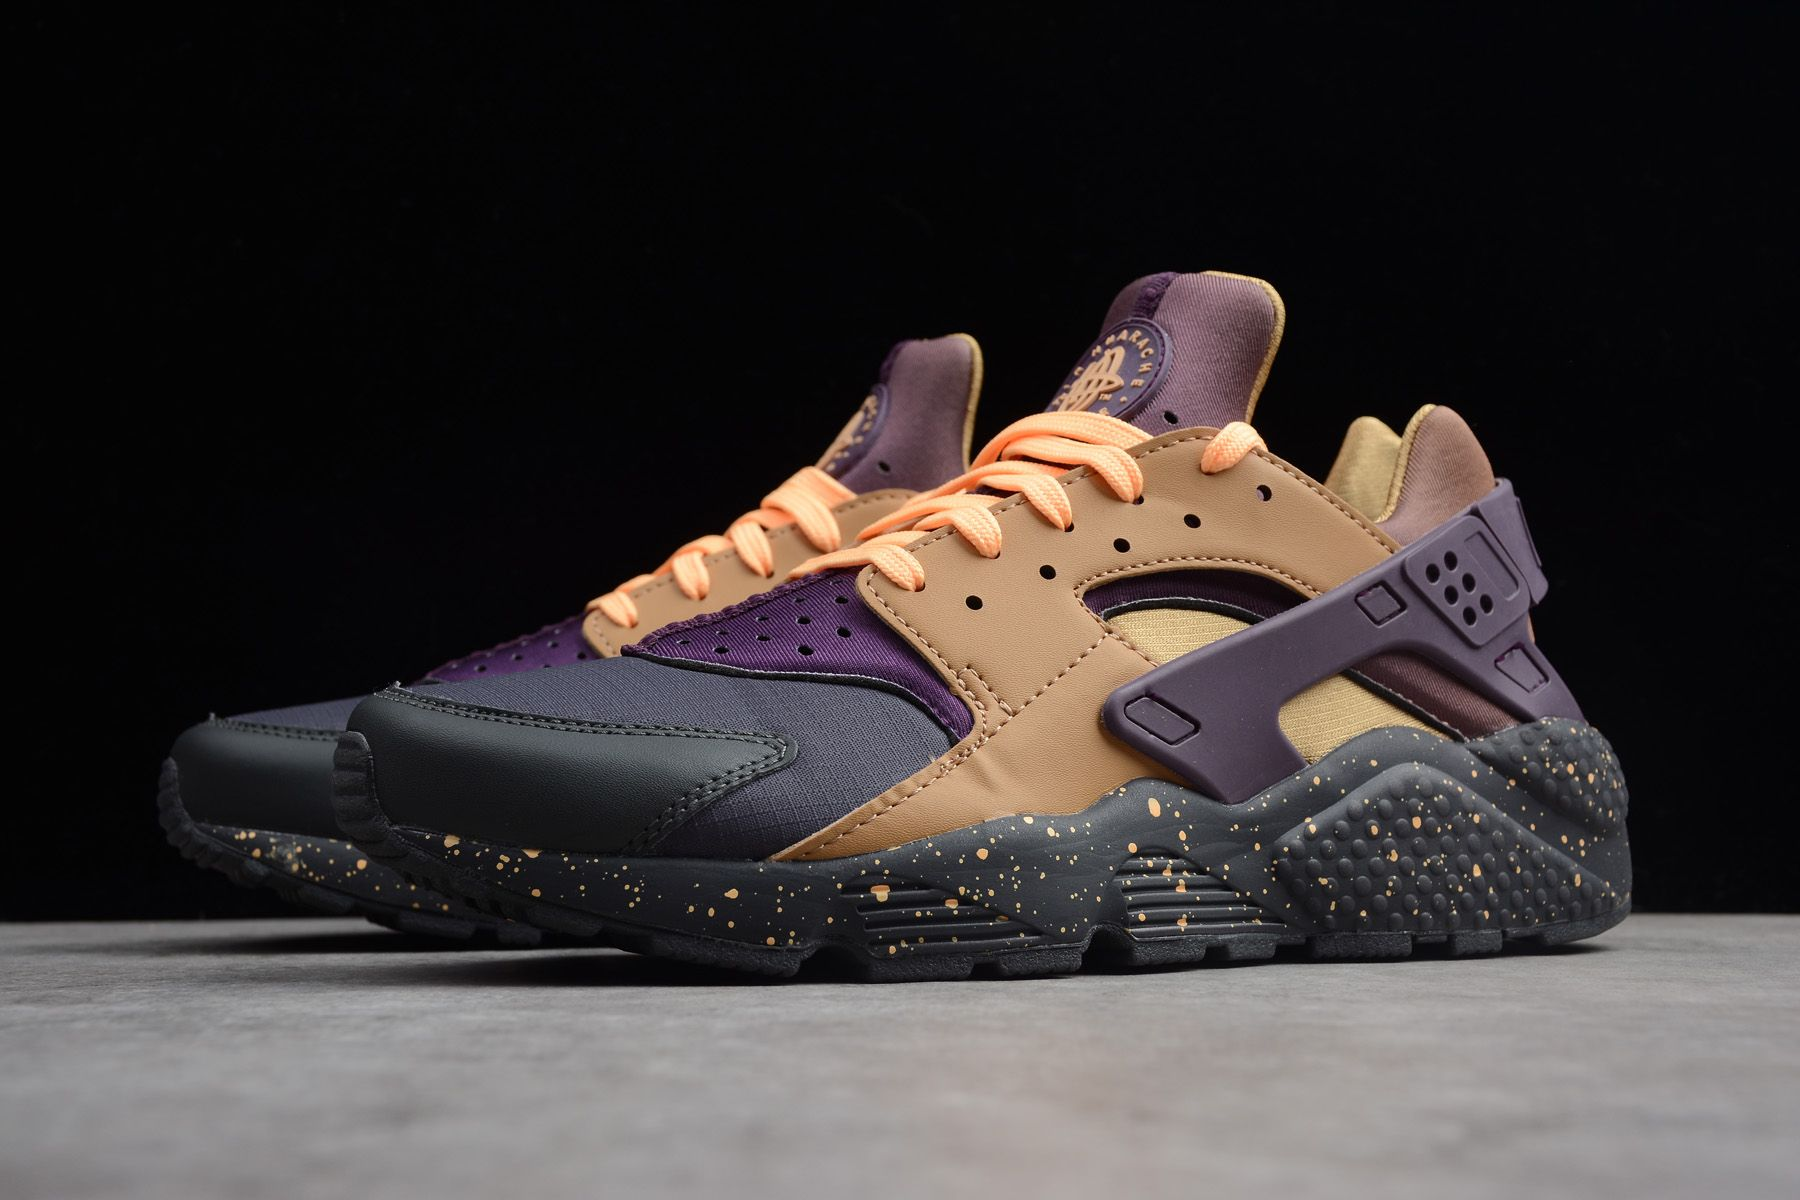 49982bfa41ce2 Nike Air Huarache Run Premium Anthracite Pro Purple Elemental Gold  704830-012